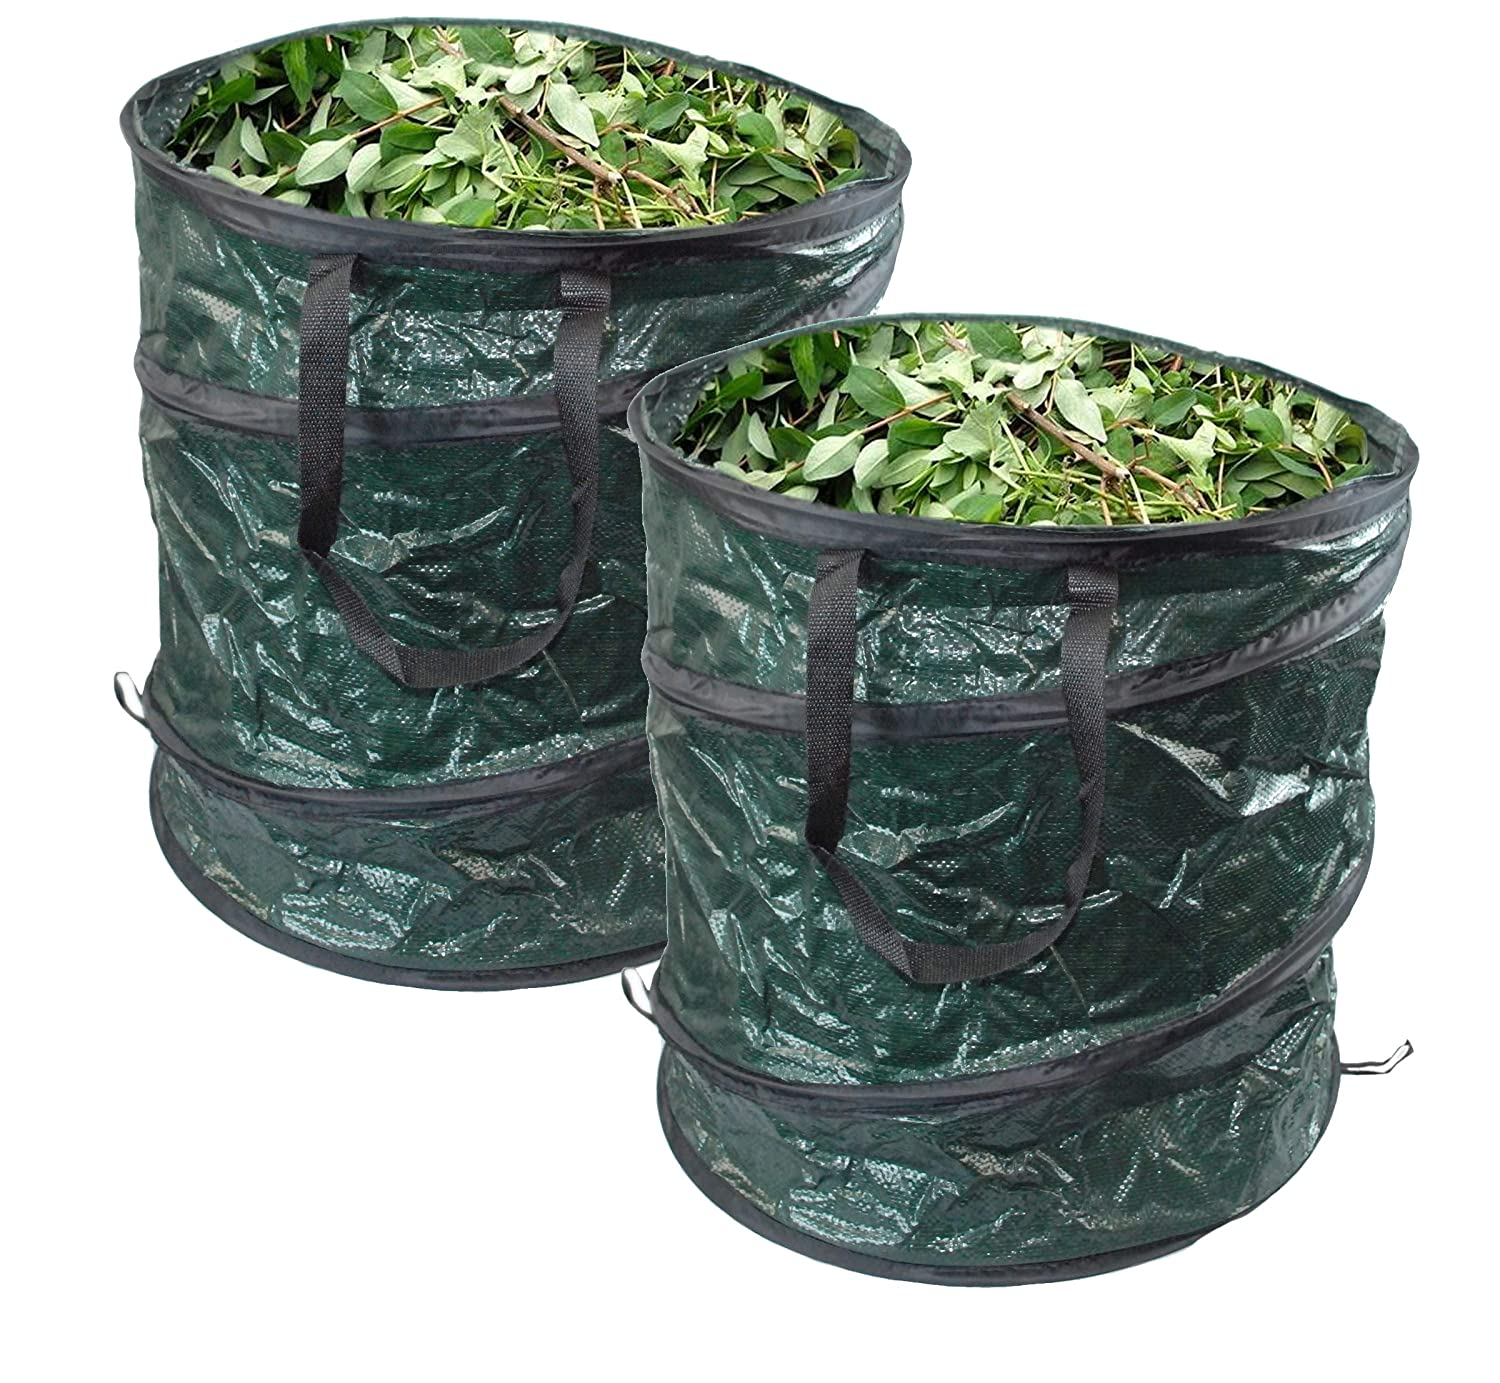 GLOW Set of 2 Pop Up Garden Waste Bags with Carry Handles – Large Reusable Premium Heavy Duty Double Stitched 80L Collapsible Folding Lightweight Outdoor Home and Garden Collection Bin Sack for Refuse Rubbish Leaves Soil Grass Weeds Cuttings Plants Flower